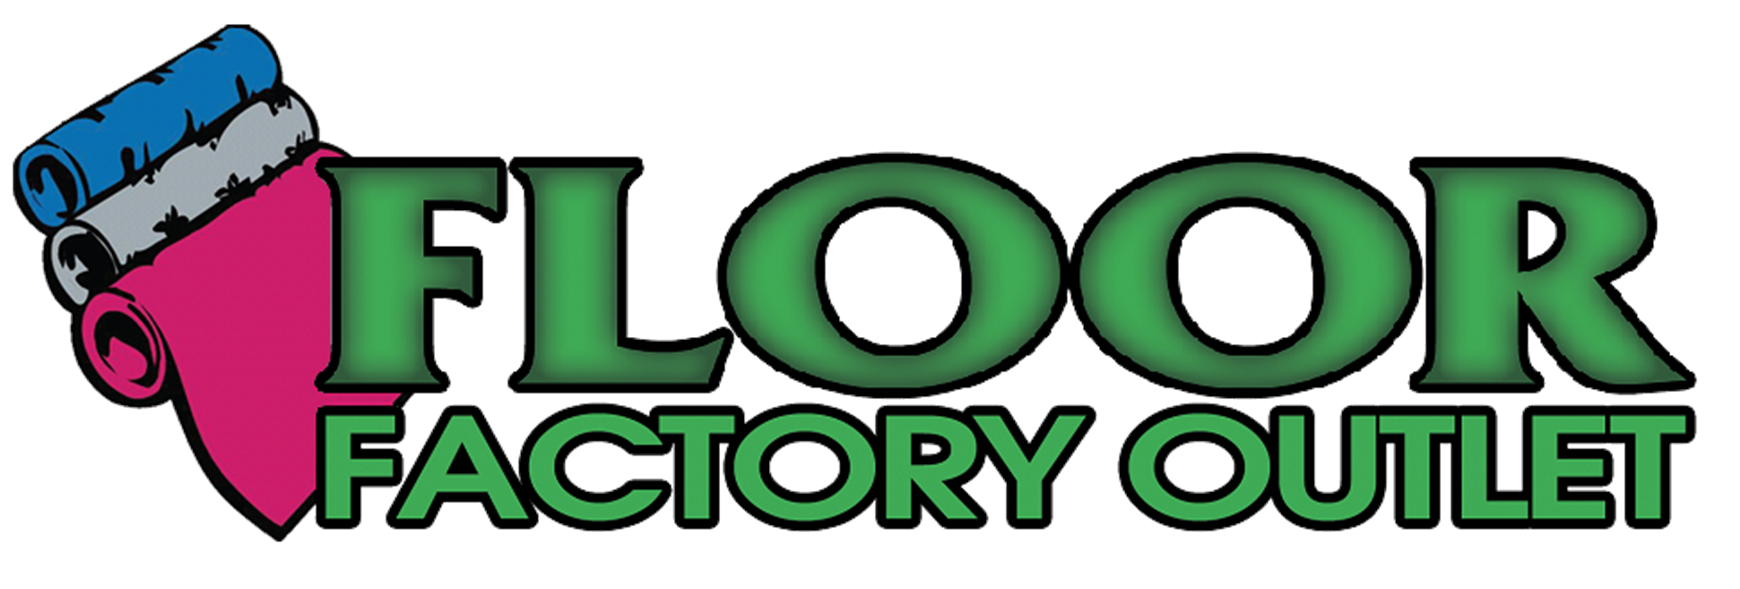 Floor Factory Outlet - 9598 SW 114th St, Ocala, FL 34481